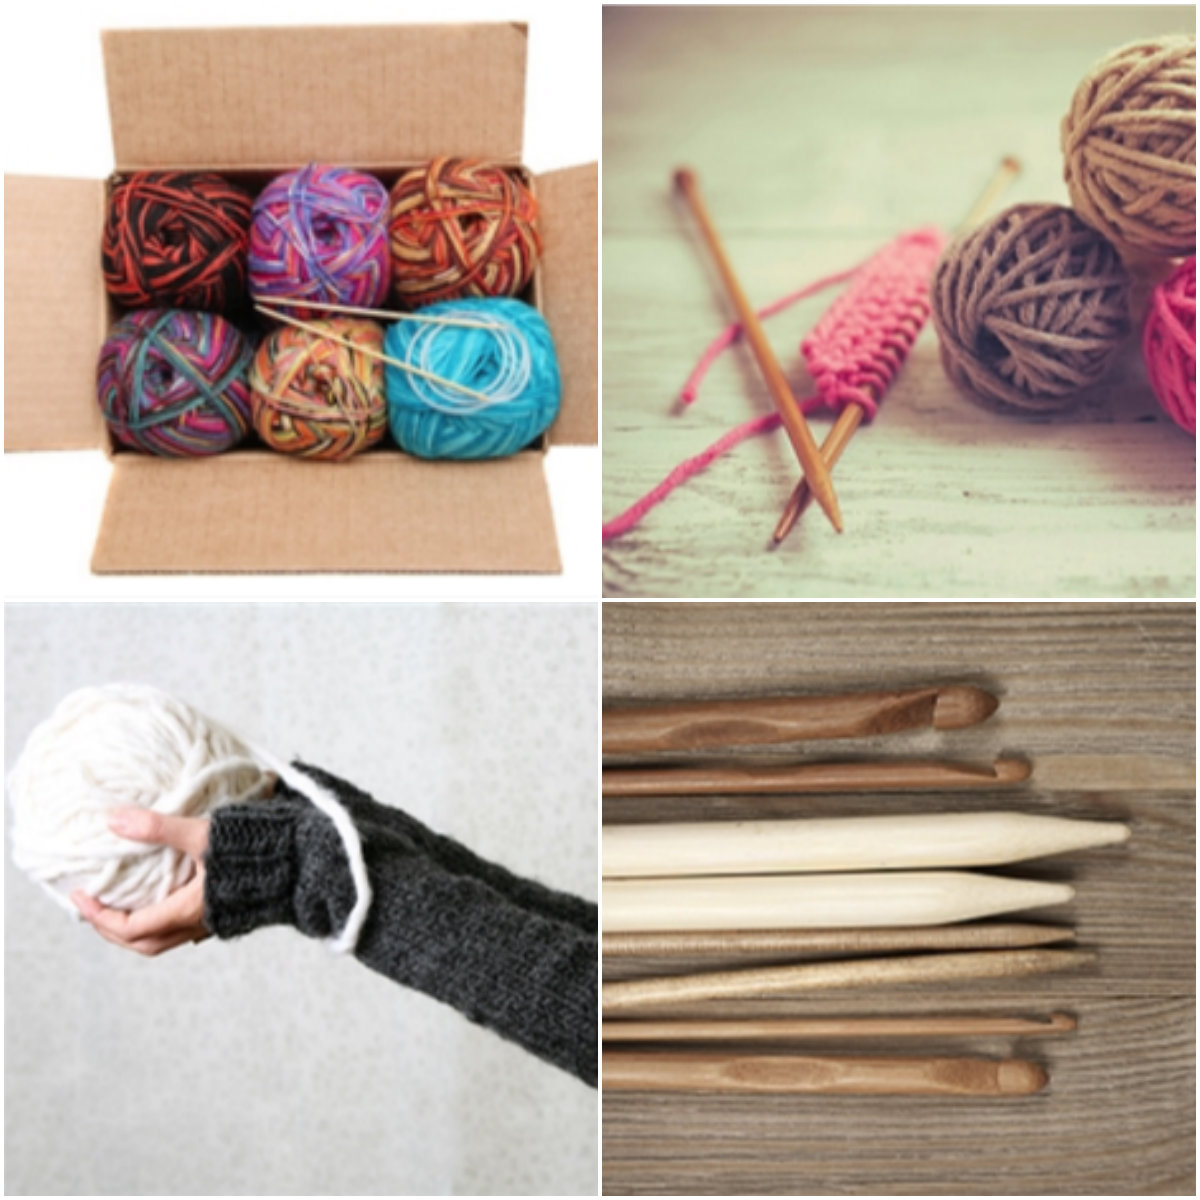 Fiber fun! Treat yourself to a GetKit made just for you by The Lady Cave.